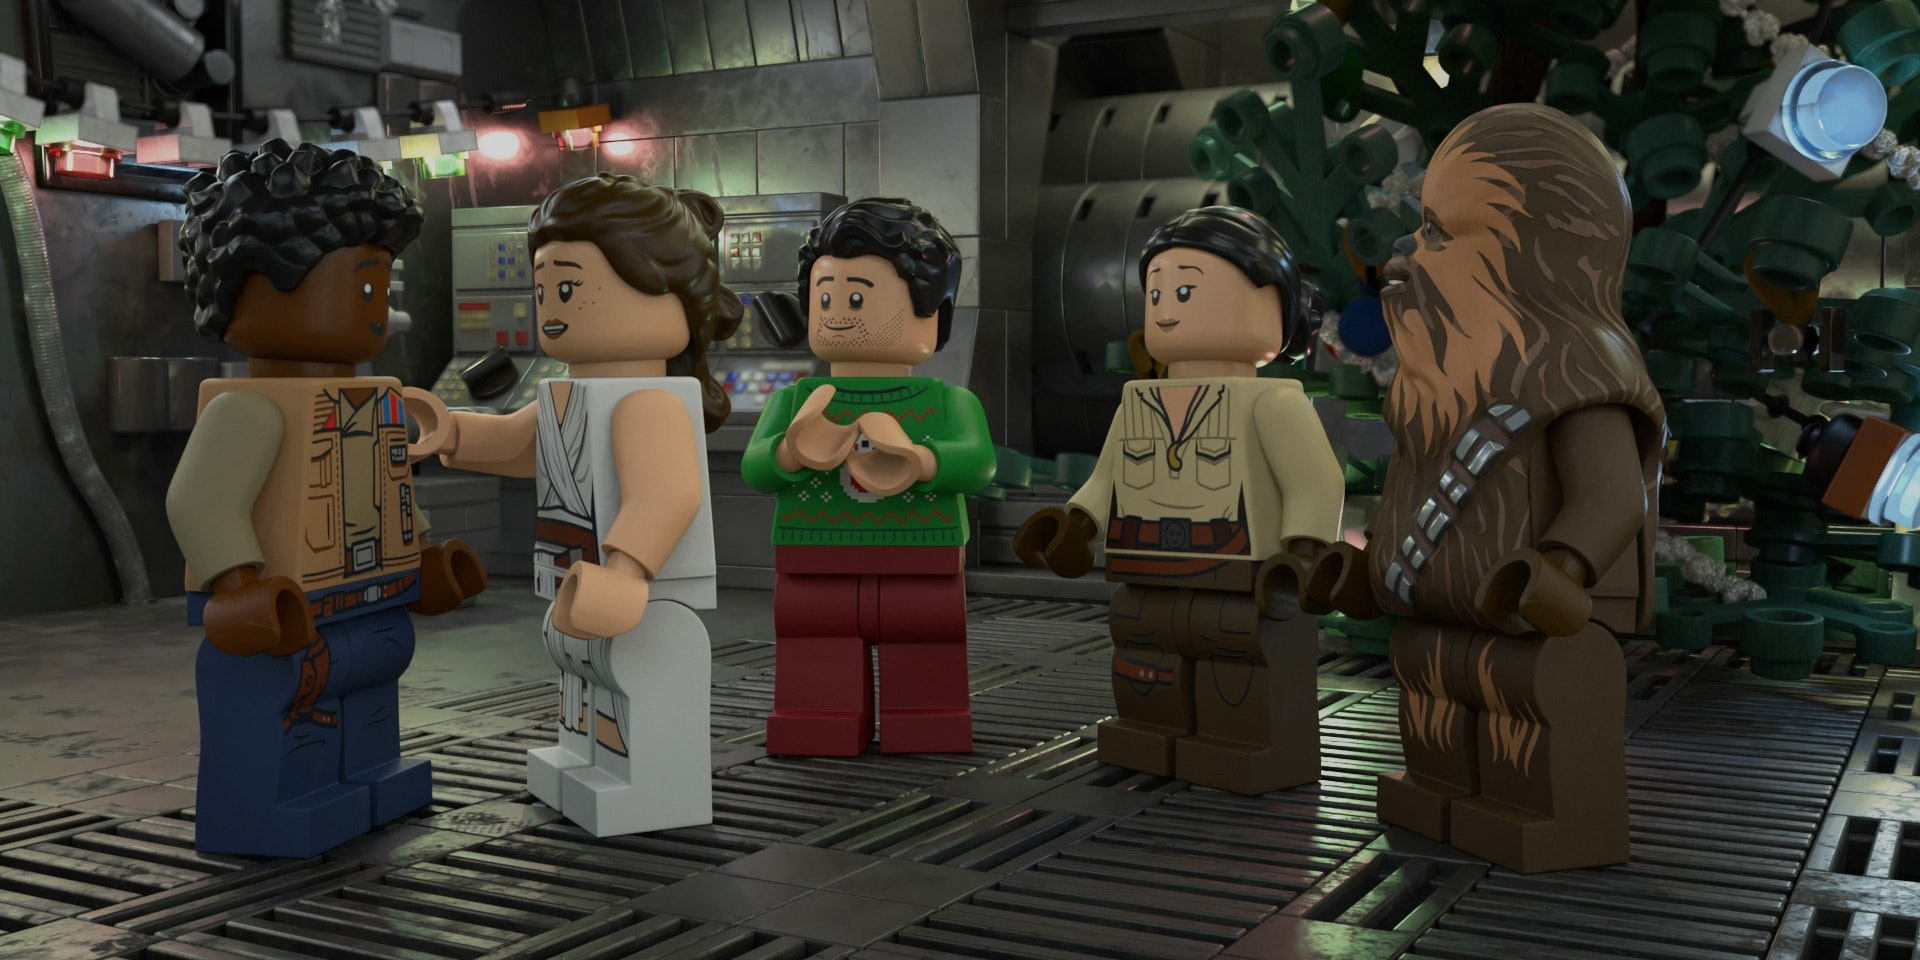 Rose Tico will co-star in the Lego 'Star Wars' Holiday Special